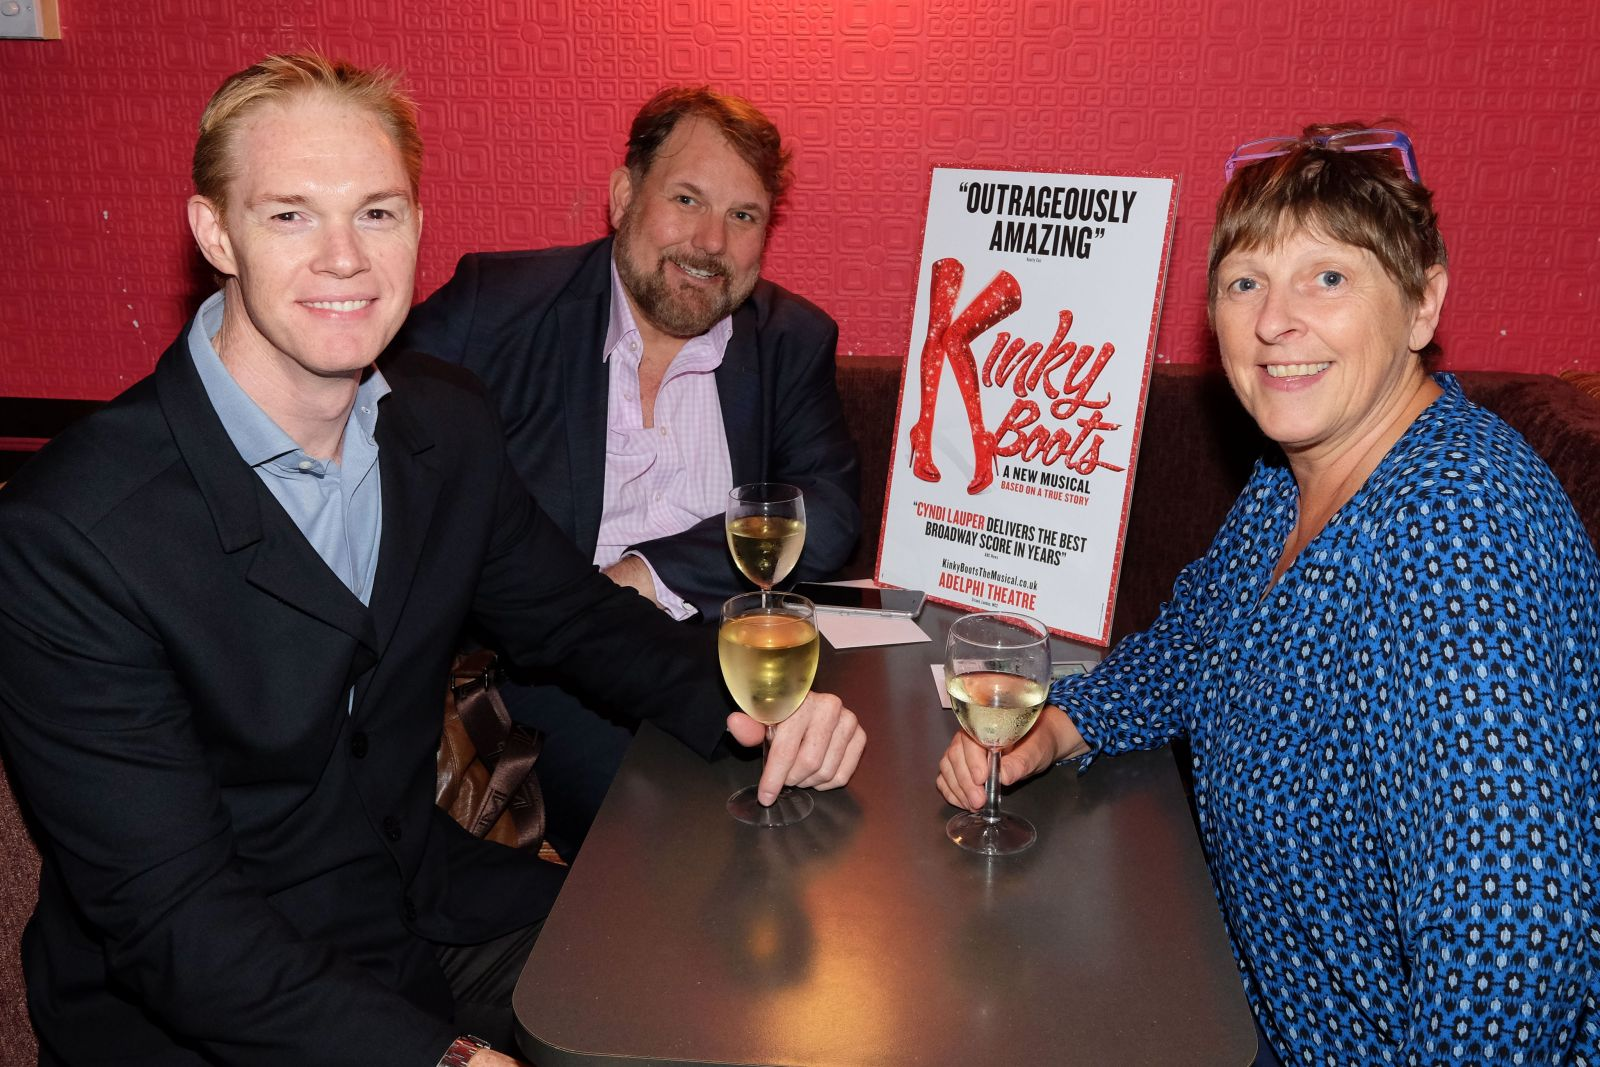 International Gay & Lesbian Travel Association FAM trip to Kinky Boots the Musical at London's Adelphi Theatre